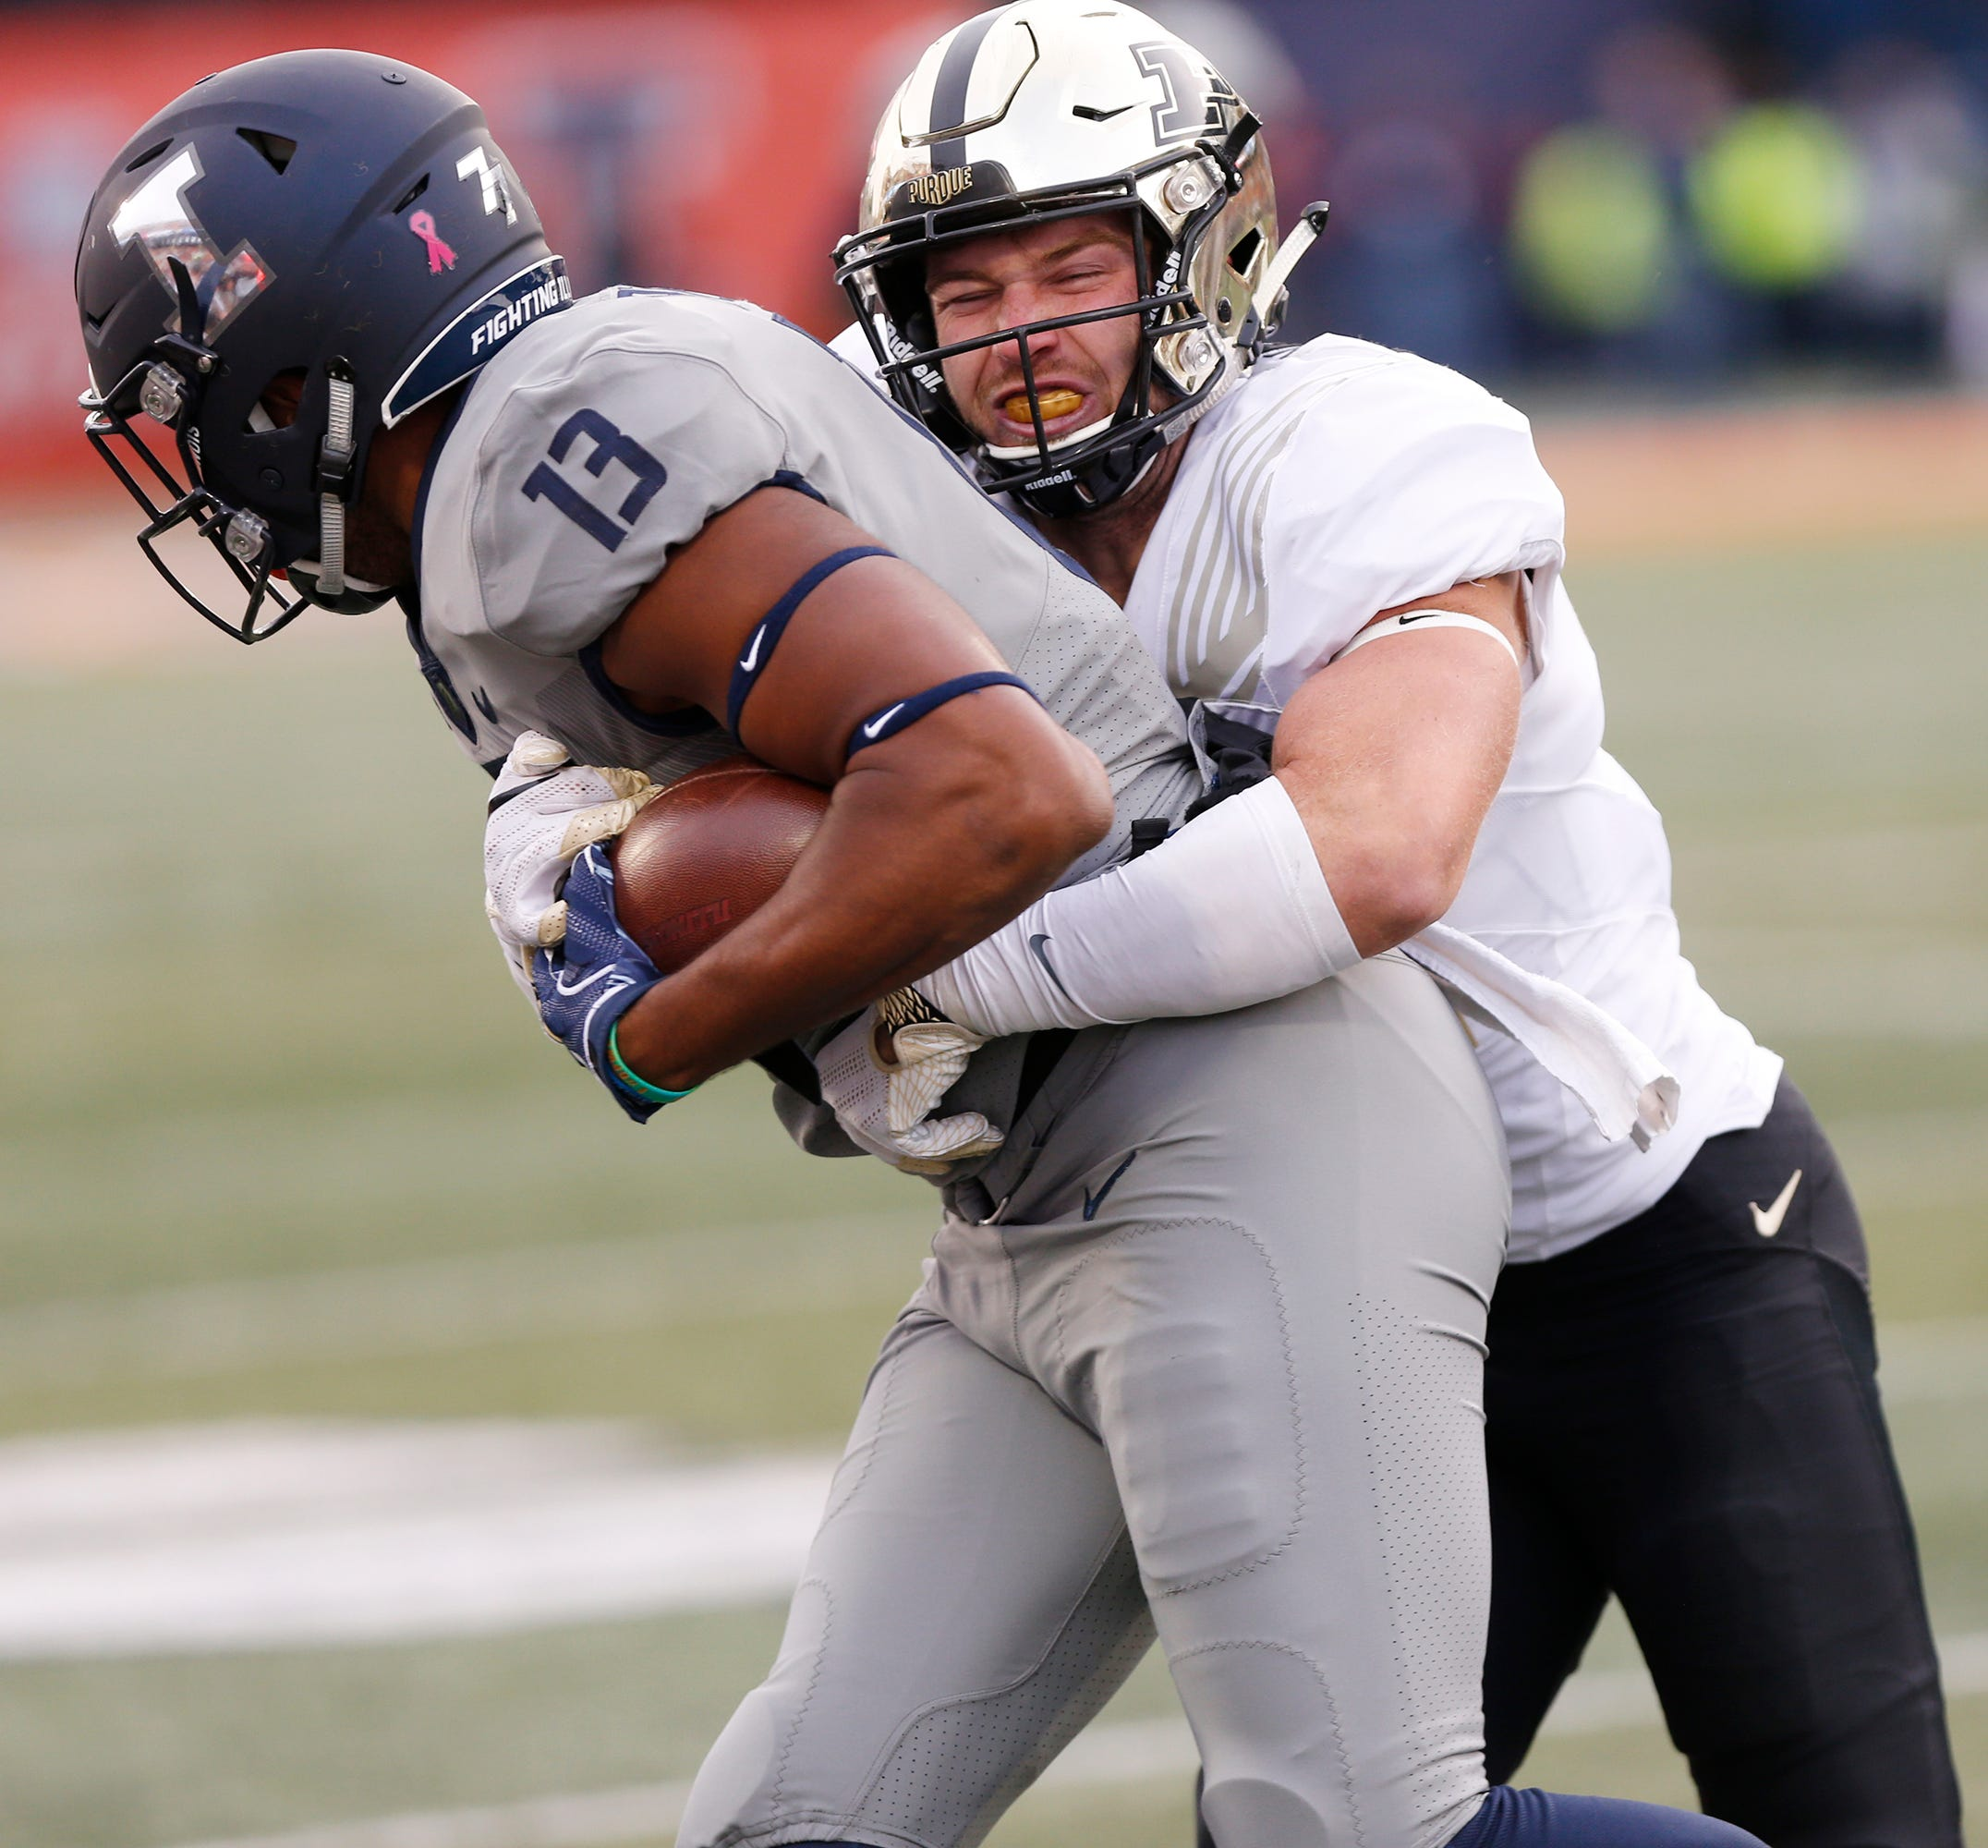 Jacob Thieneman of Purdue wraps up Caleb Reams of Illinois after a short pass reception in the second half Saturday, October 13, 2018, in Champaign, Illinois. Purdue thumped Illinois 46-7.